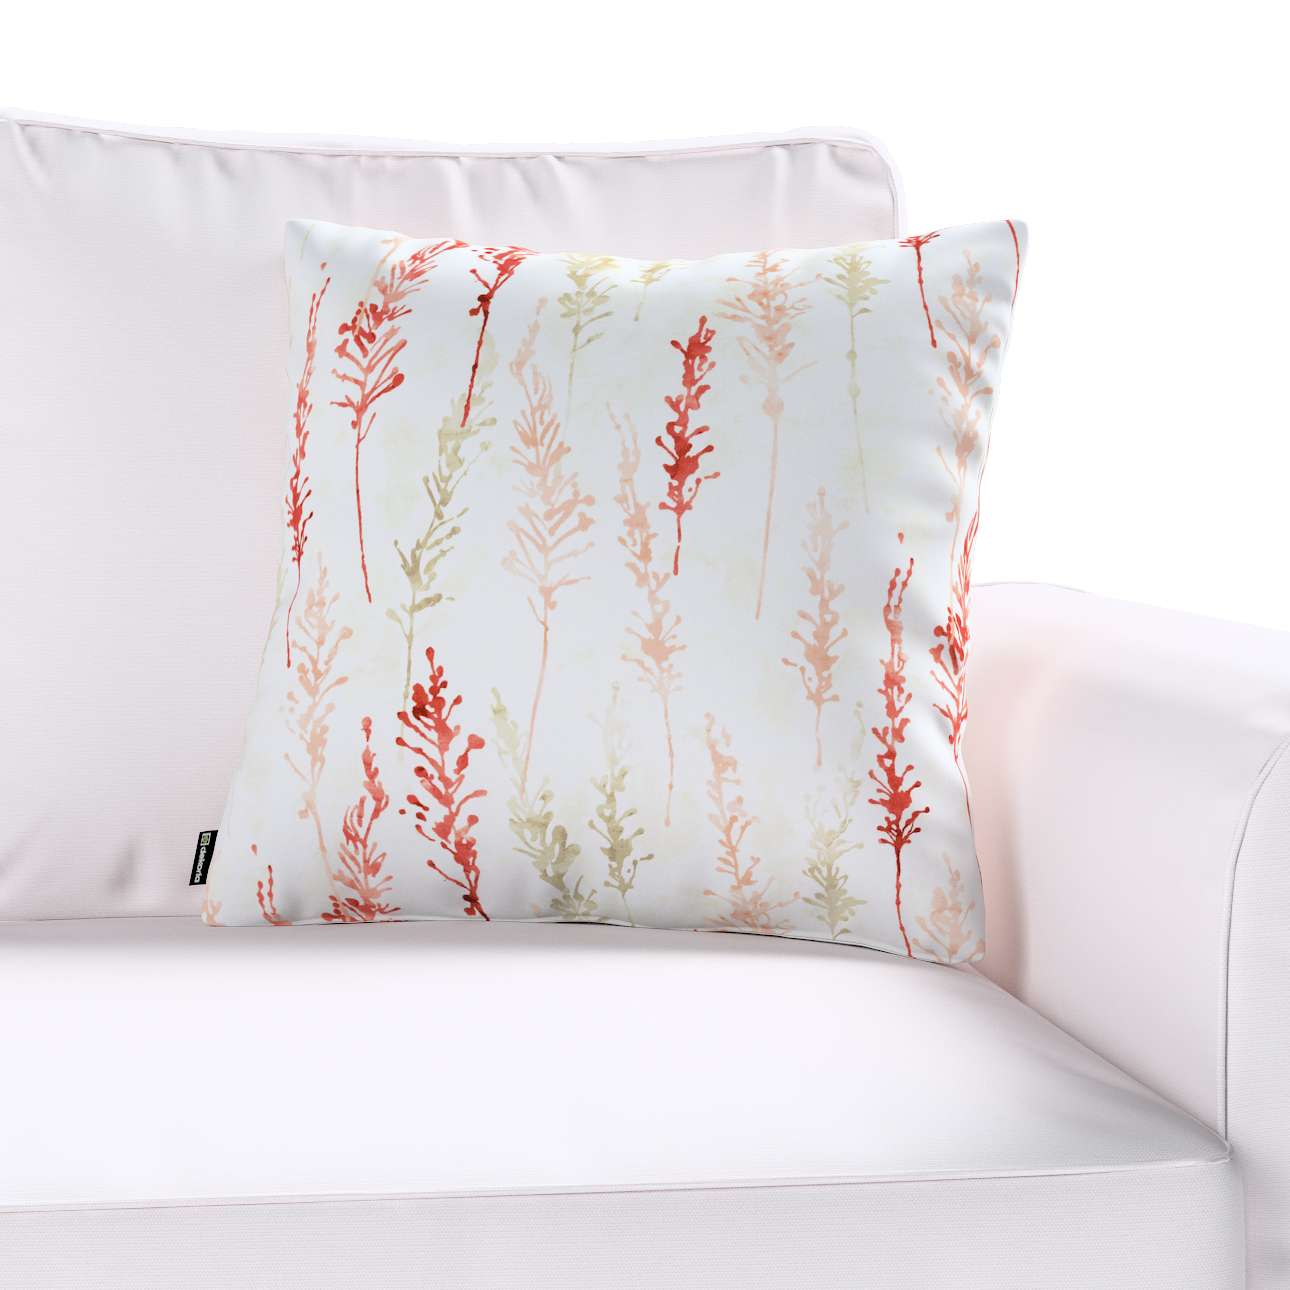 Kinga cushion cover 43 x 43 cm (17 x 17 inch) in collection Acapulco, fabric: 141-37